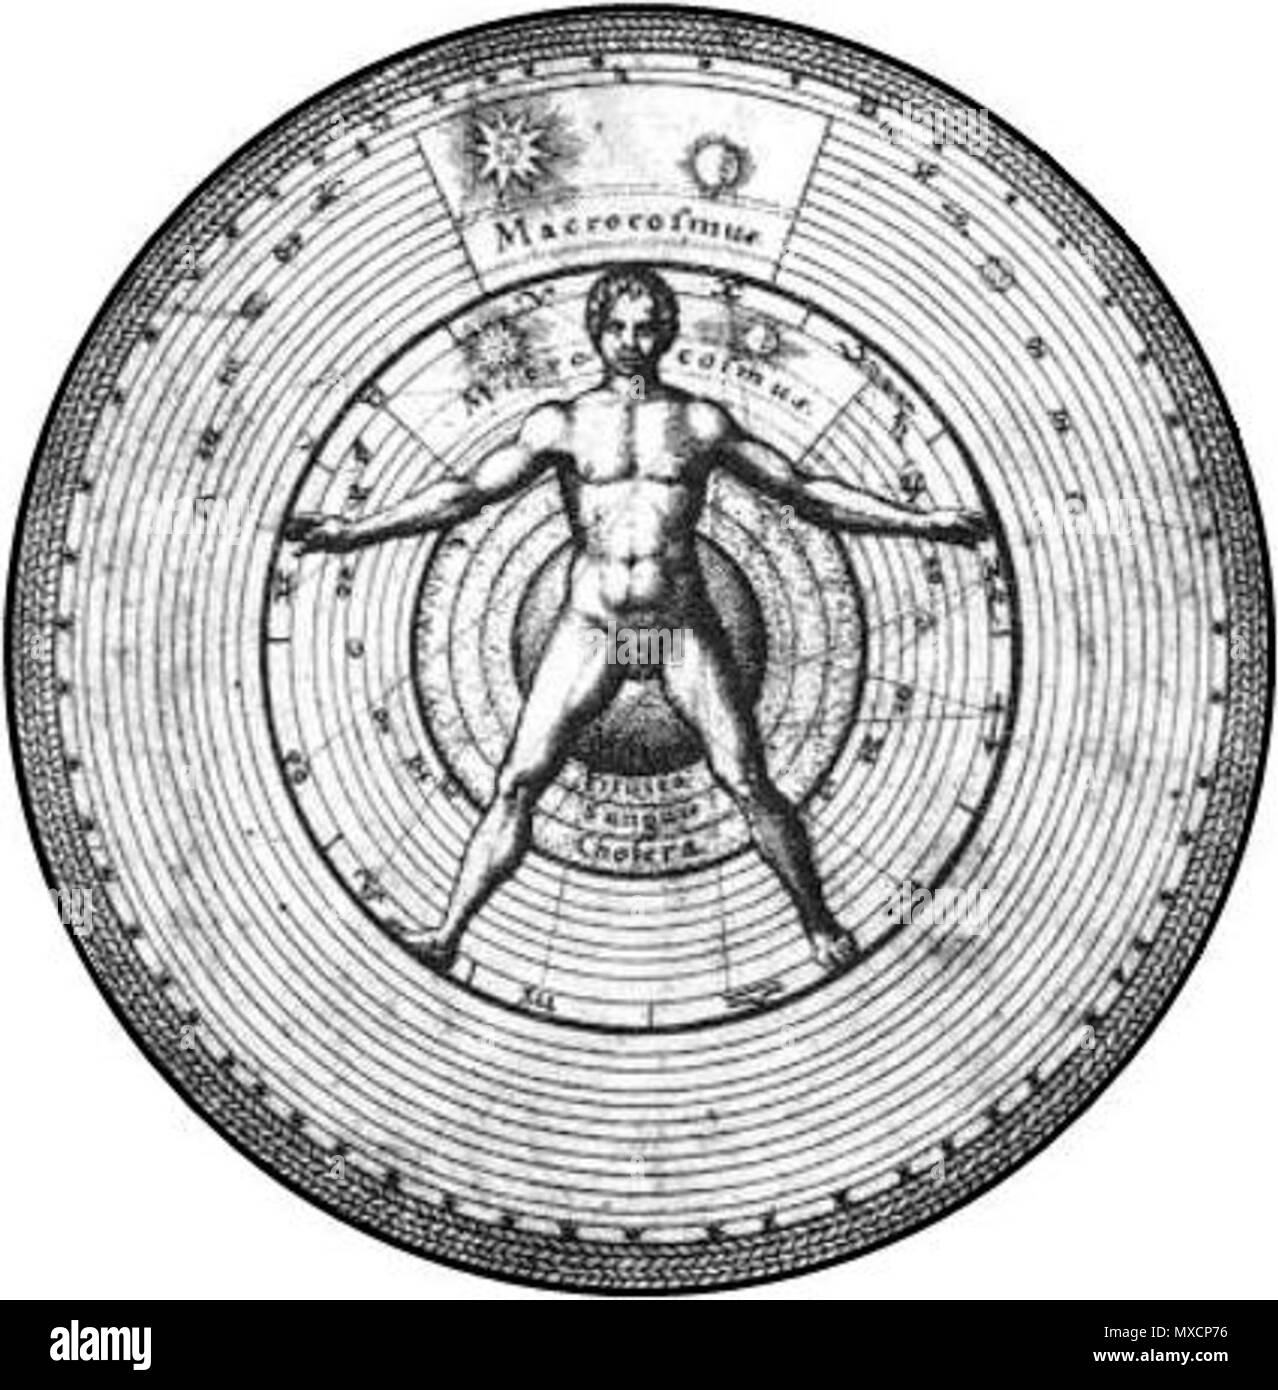 . English: Chart of Micro-cosmos in Stoicism, by Robert Fludd, Utriusque cosmi: Metaphysica, Physica atque Technica Historia, Oppenhemii, 1617 . January 1999. Scroll of Stoicism 416 Micro Cosmo in Achamoth - Stock Image